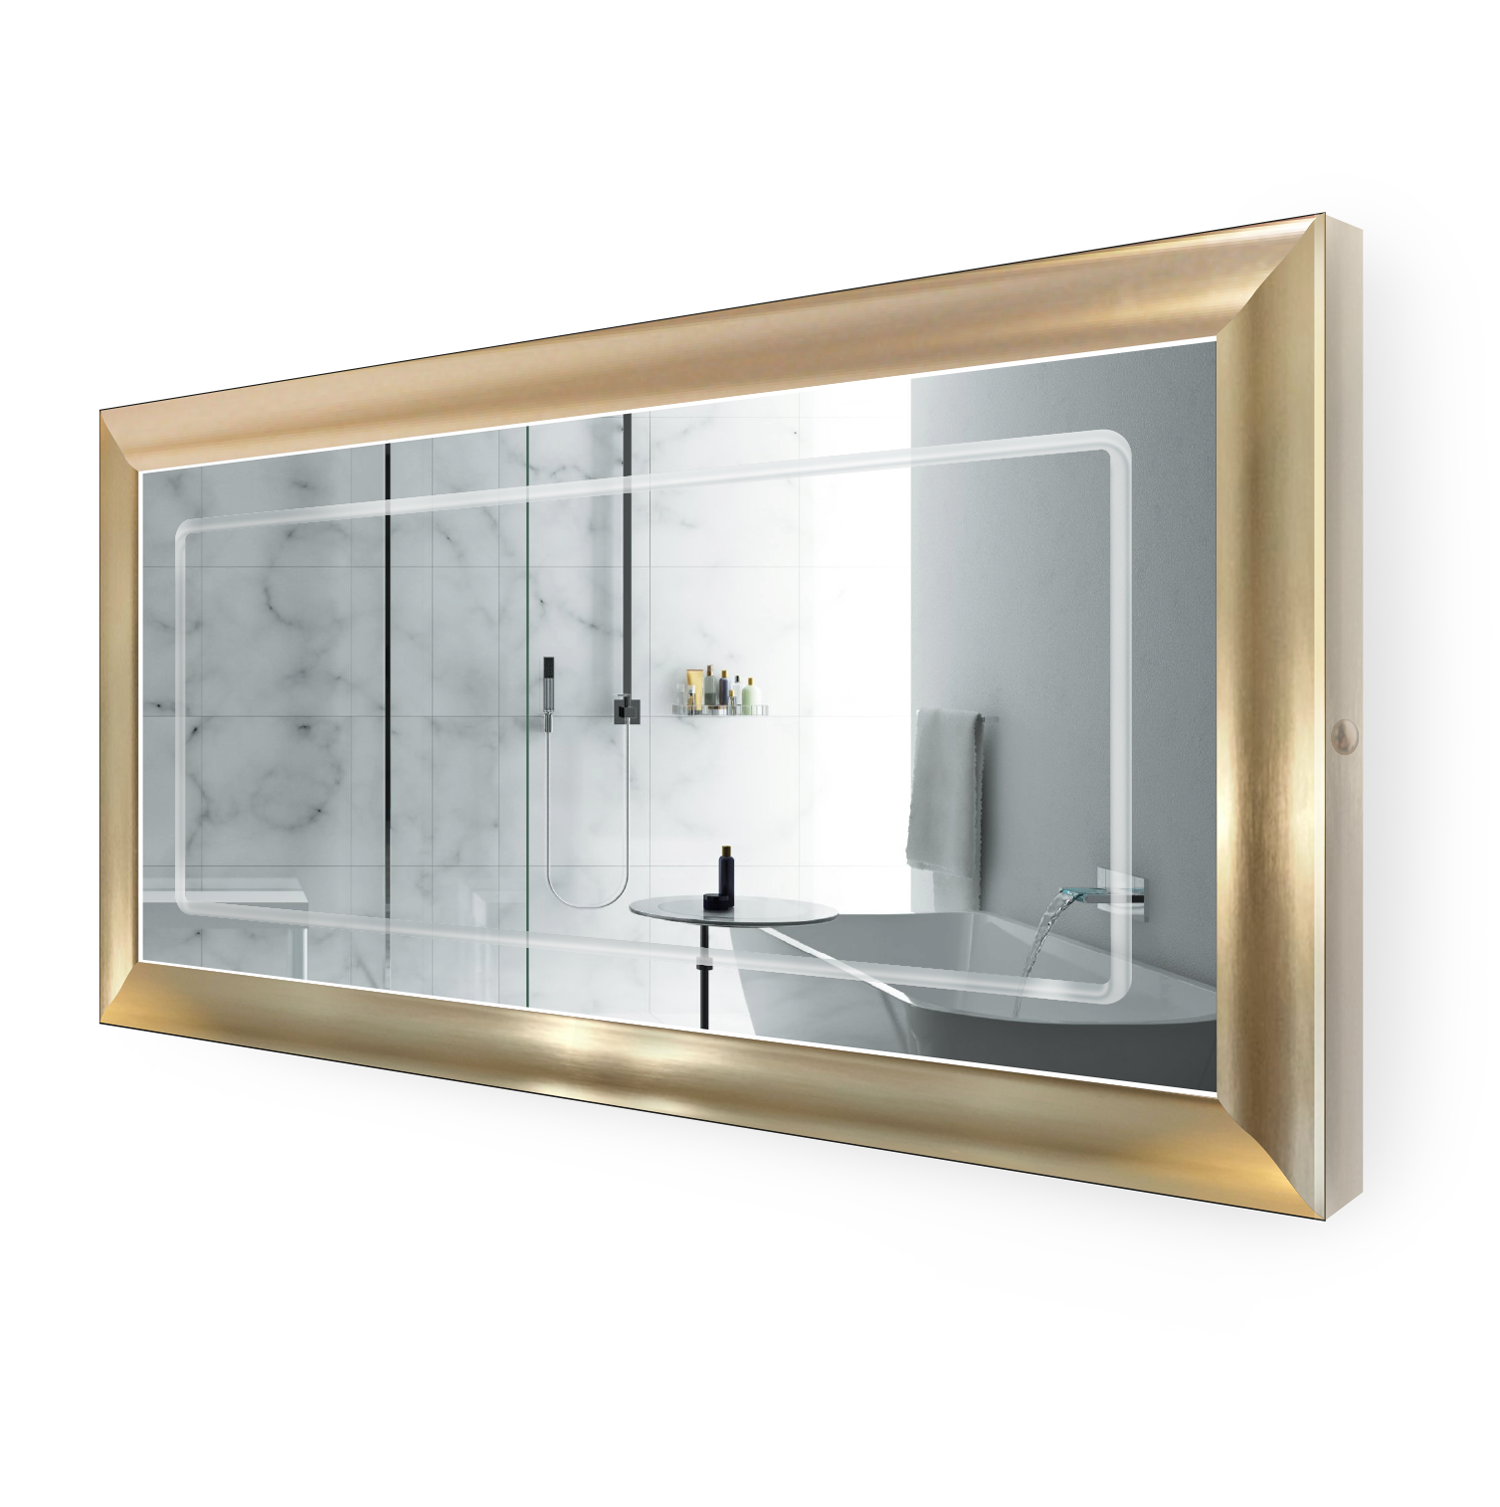 LED Lighted 60 Inch x 30 Inch Bathroom Gold Frame Mirror with Defogger